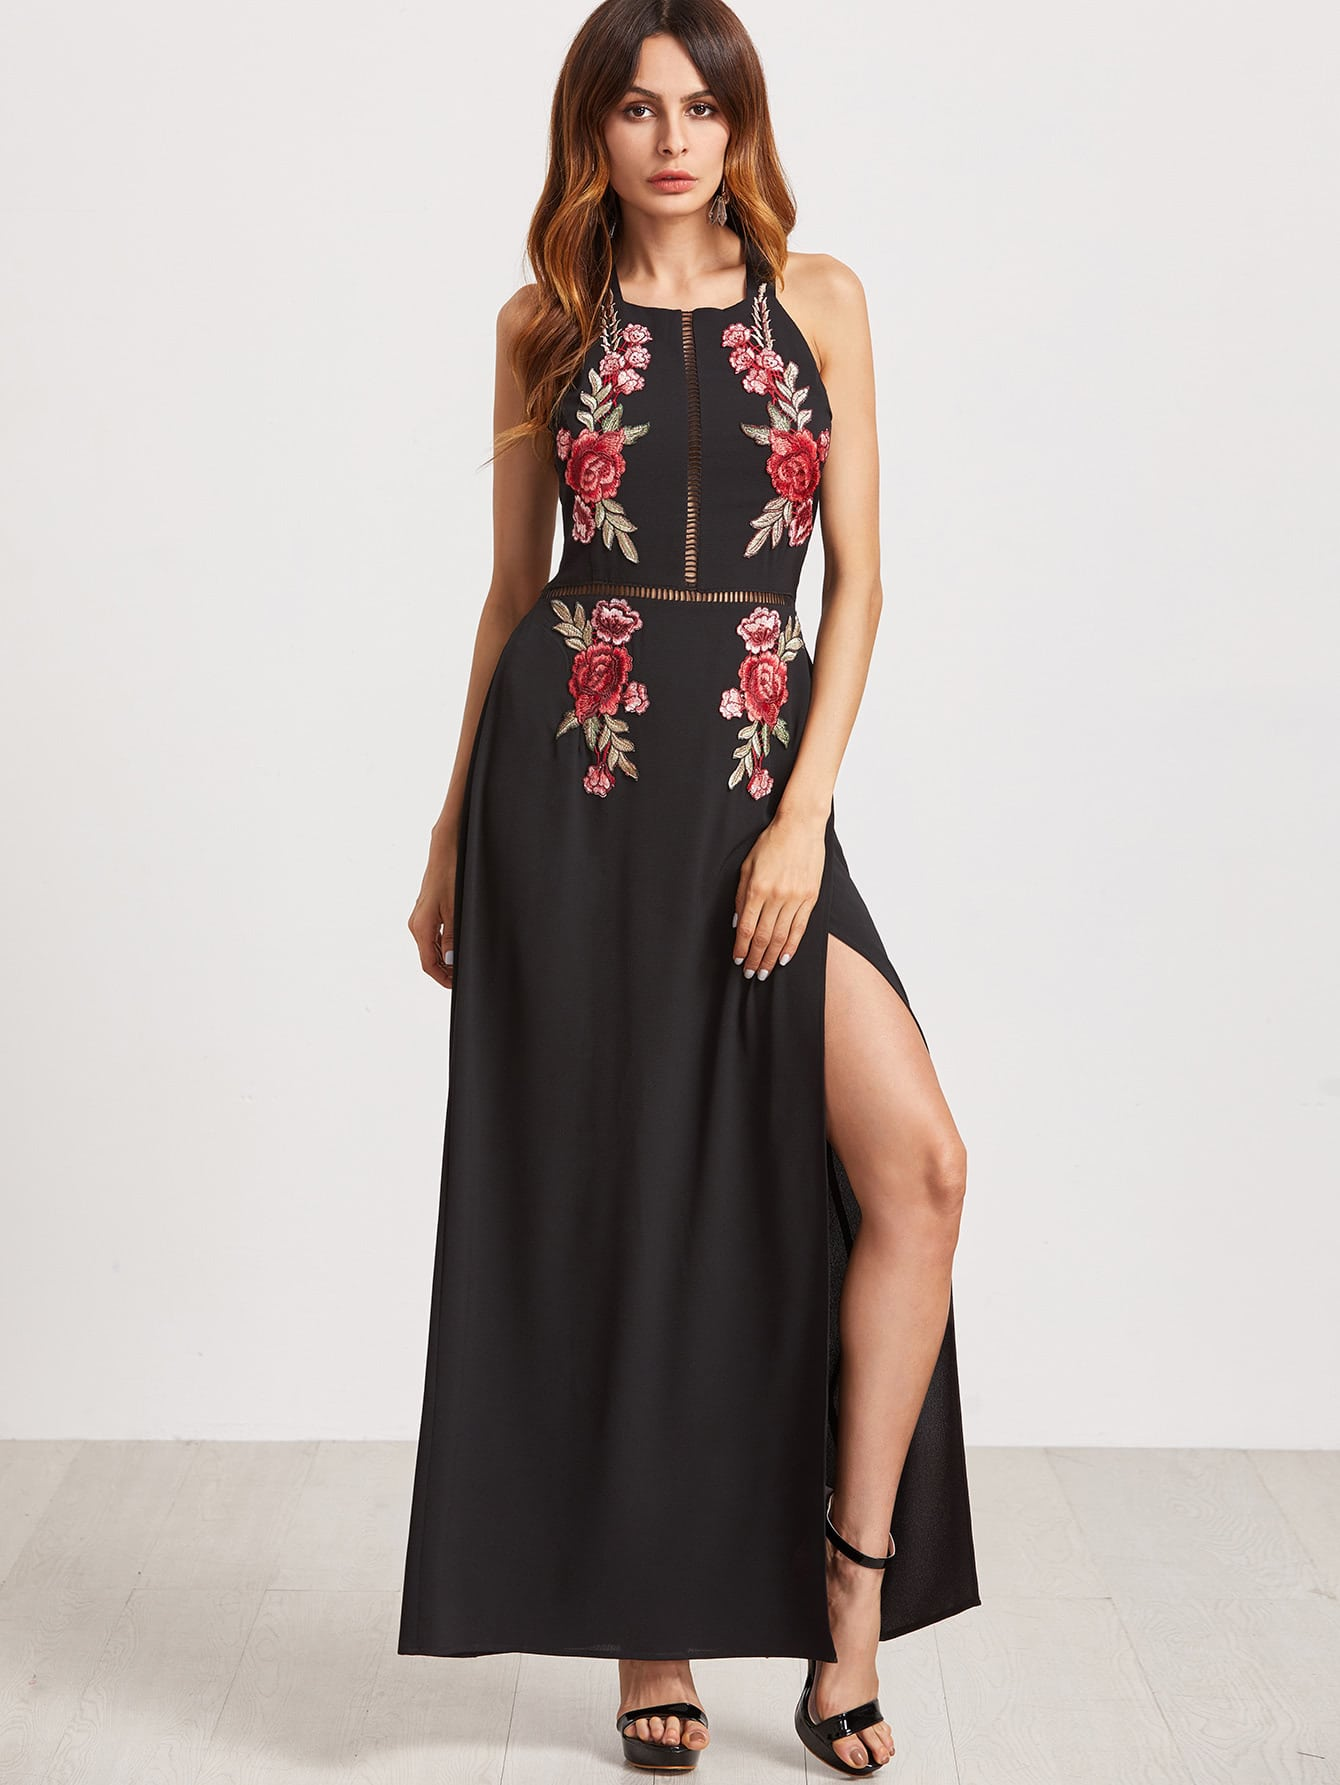 Embroidered Rose Applique Tied Open Back High Slit Dress embroidered rose applique side split belt dress